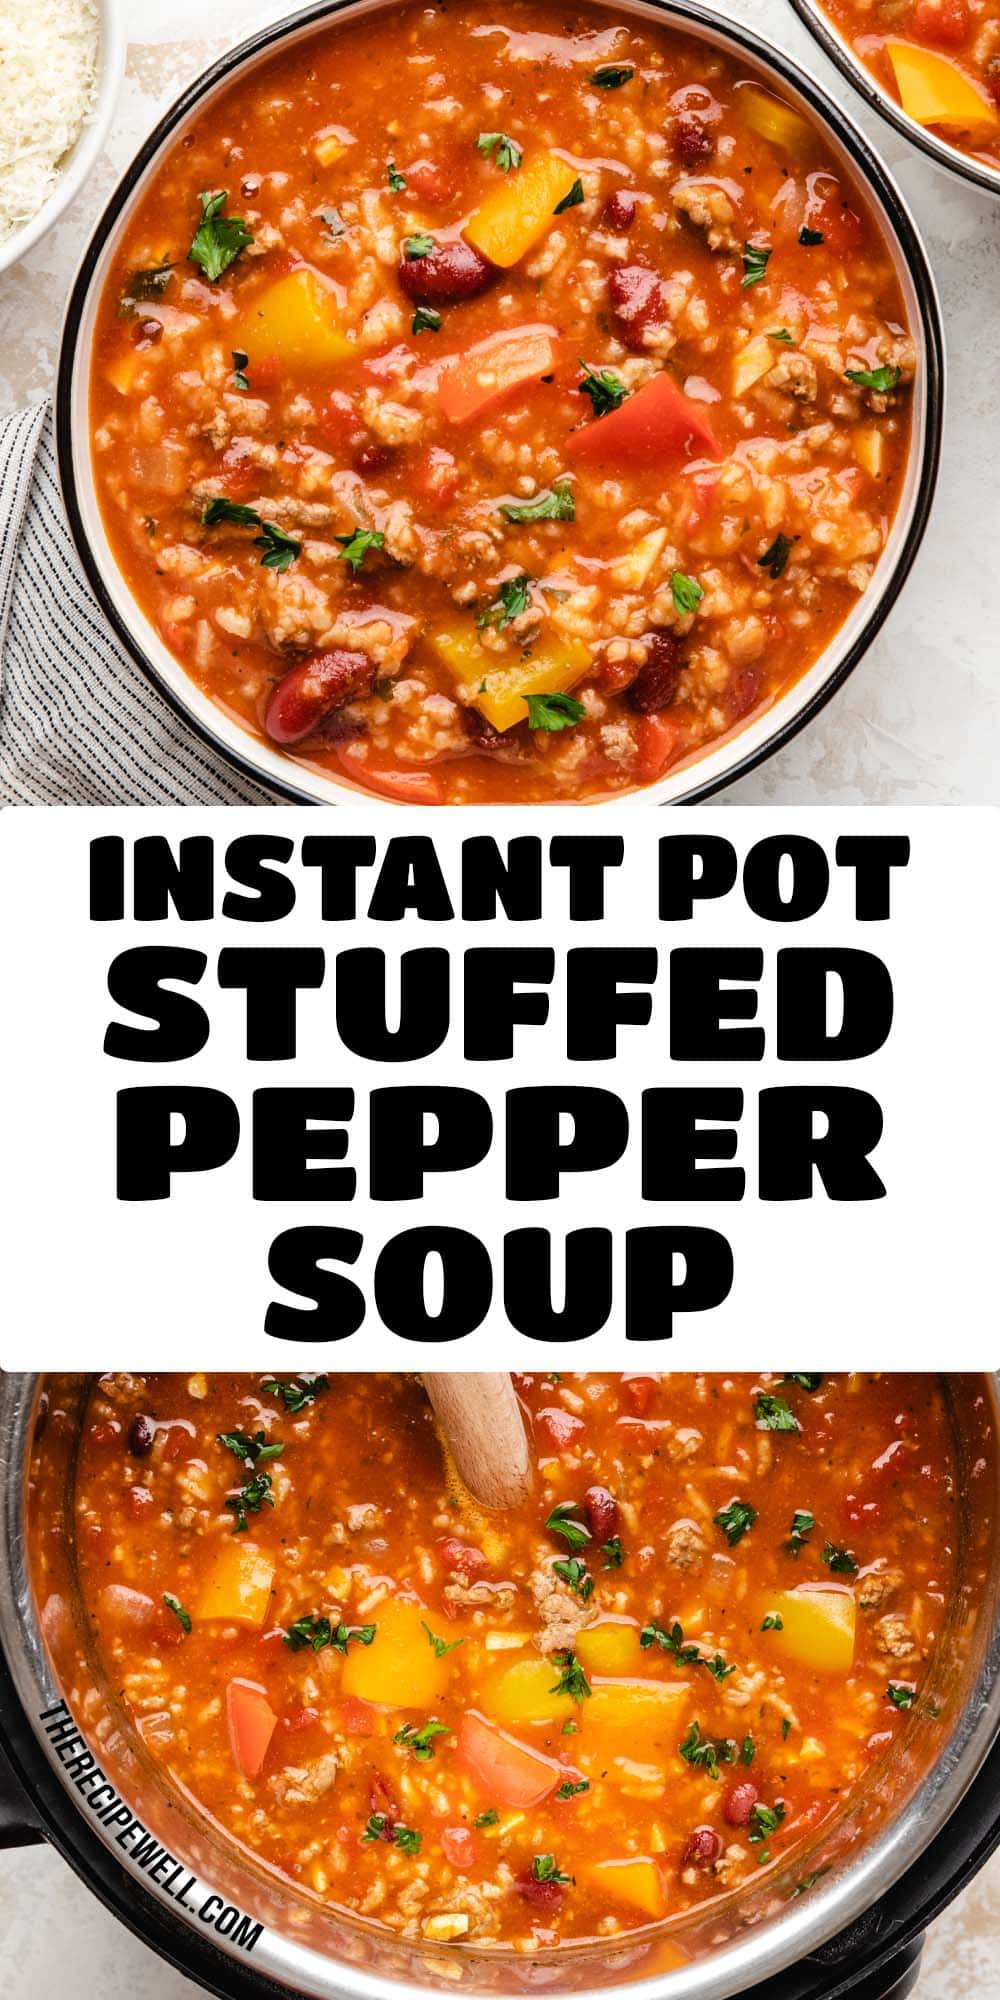 Instant Pot Stuffed Pepper Soup tastes just like stuffed peppers, but it's way easier to make! Made with bell peppers, ground chicken, rice and beans, this soup is a satisfying one-pot family meal. FOLLOW The Recipe Well for more great meal ideas! #healthysoup #instantpot #dinner #lunch #mealprep via @therecipewell